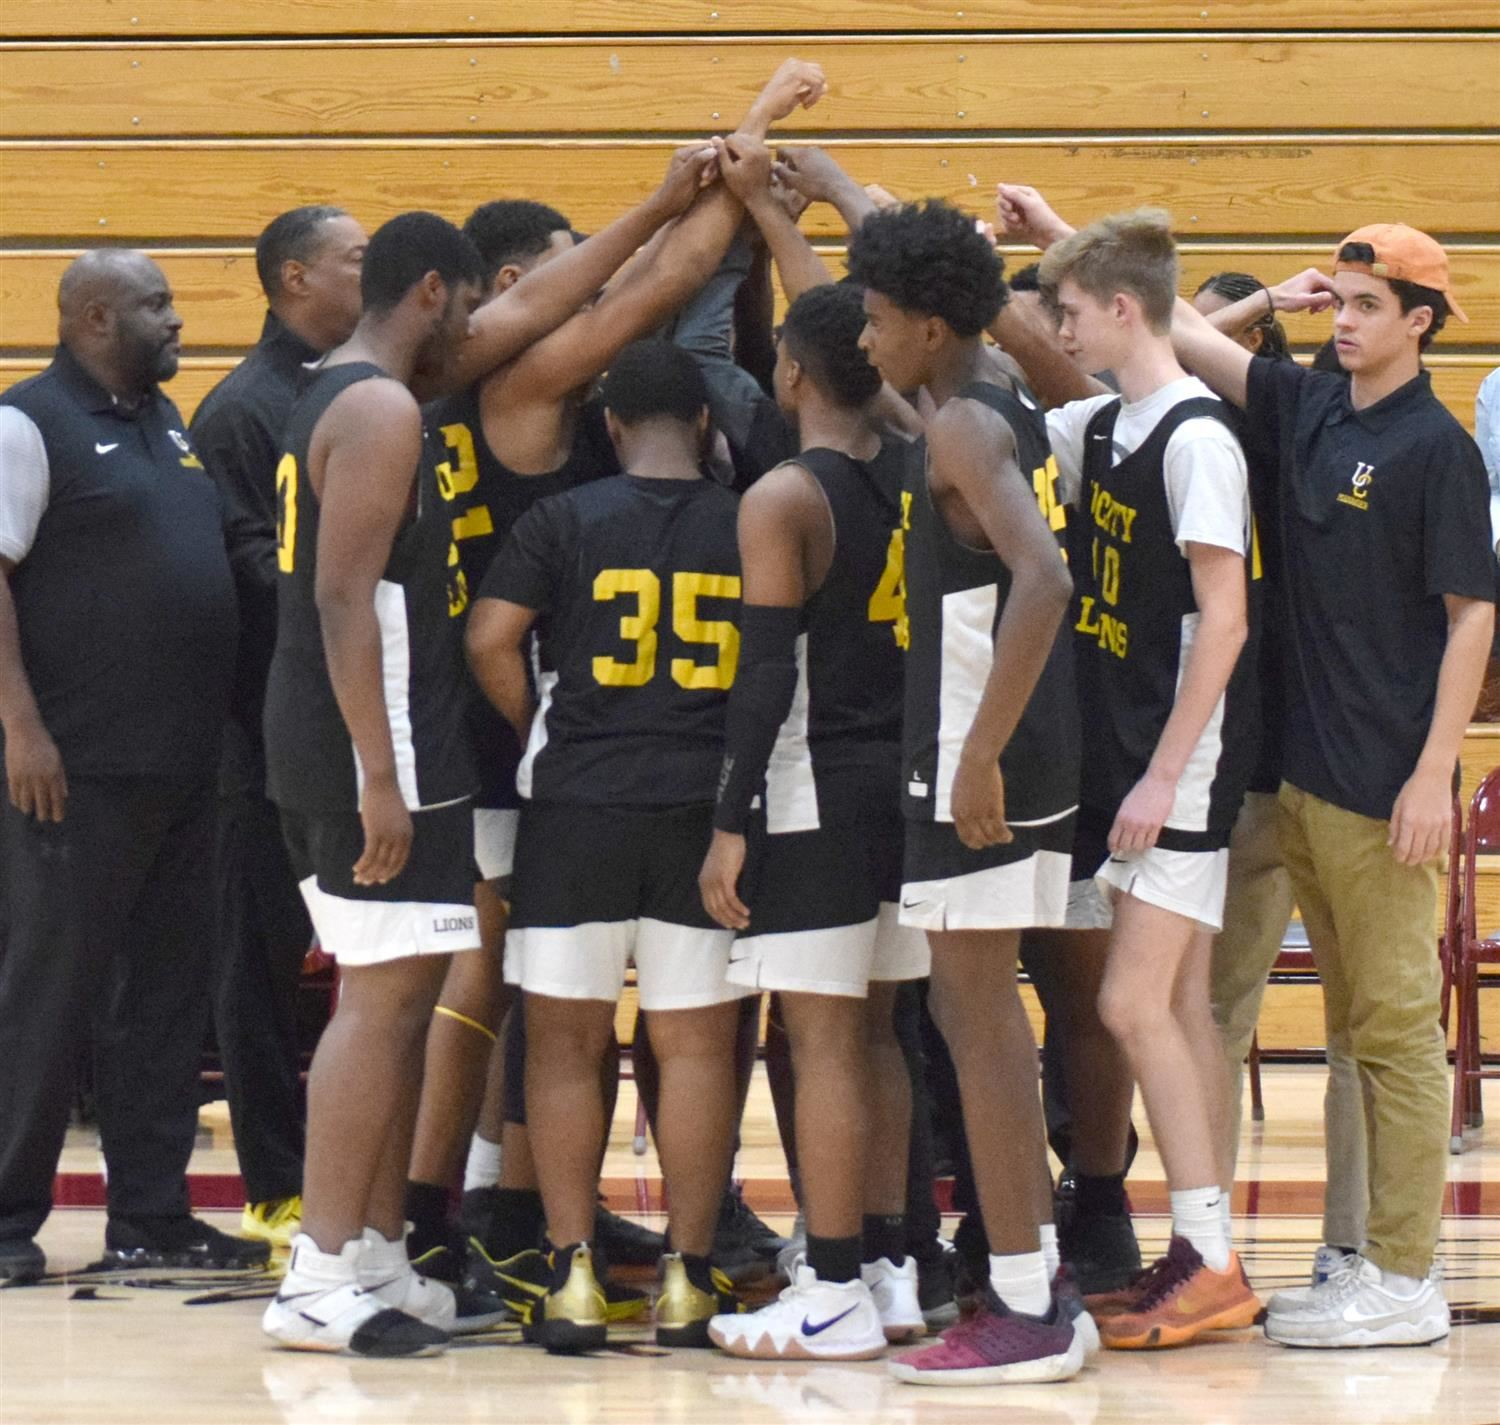 Boys Basketball Huddle